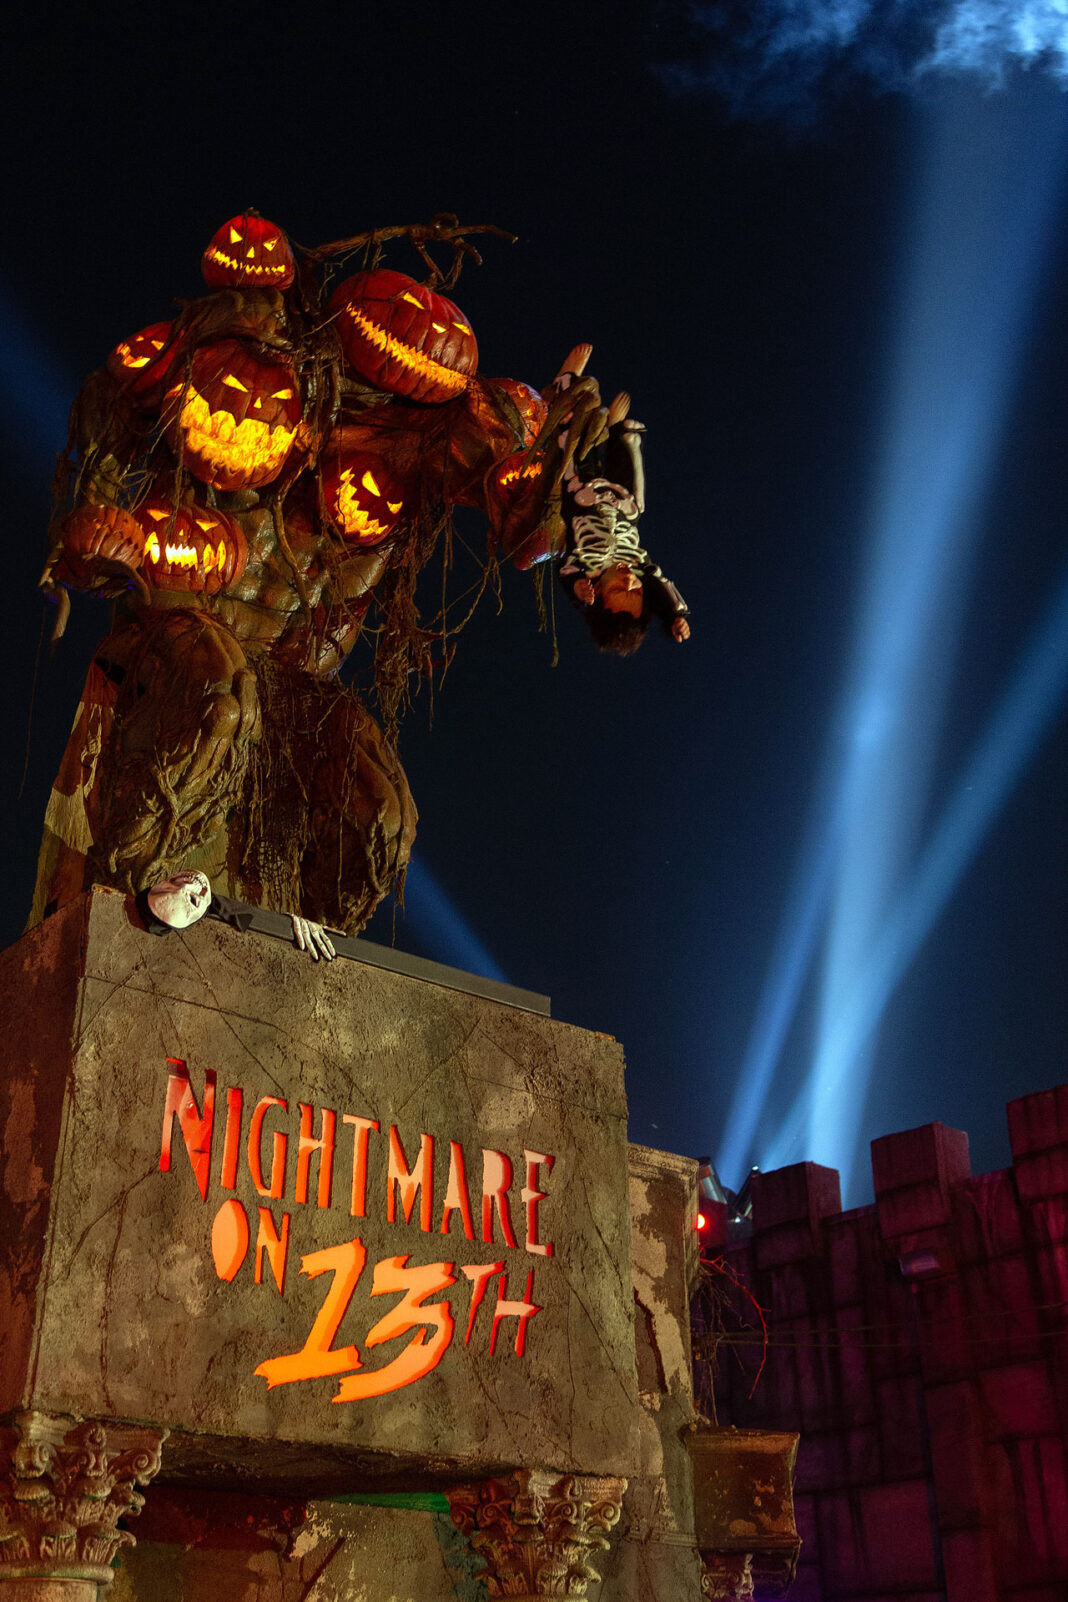 Entrance to Nightmare on 13th